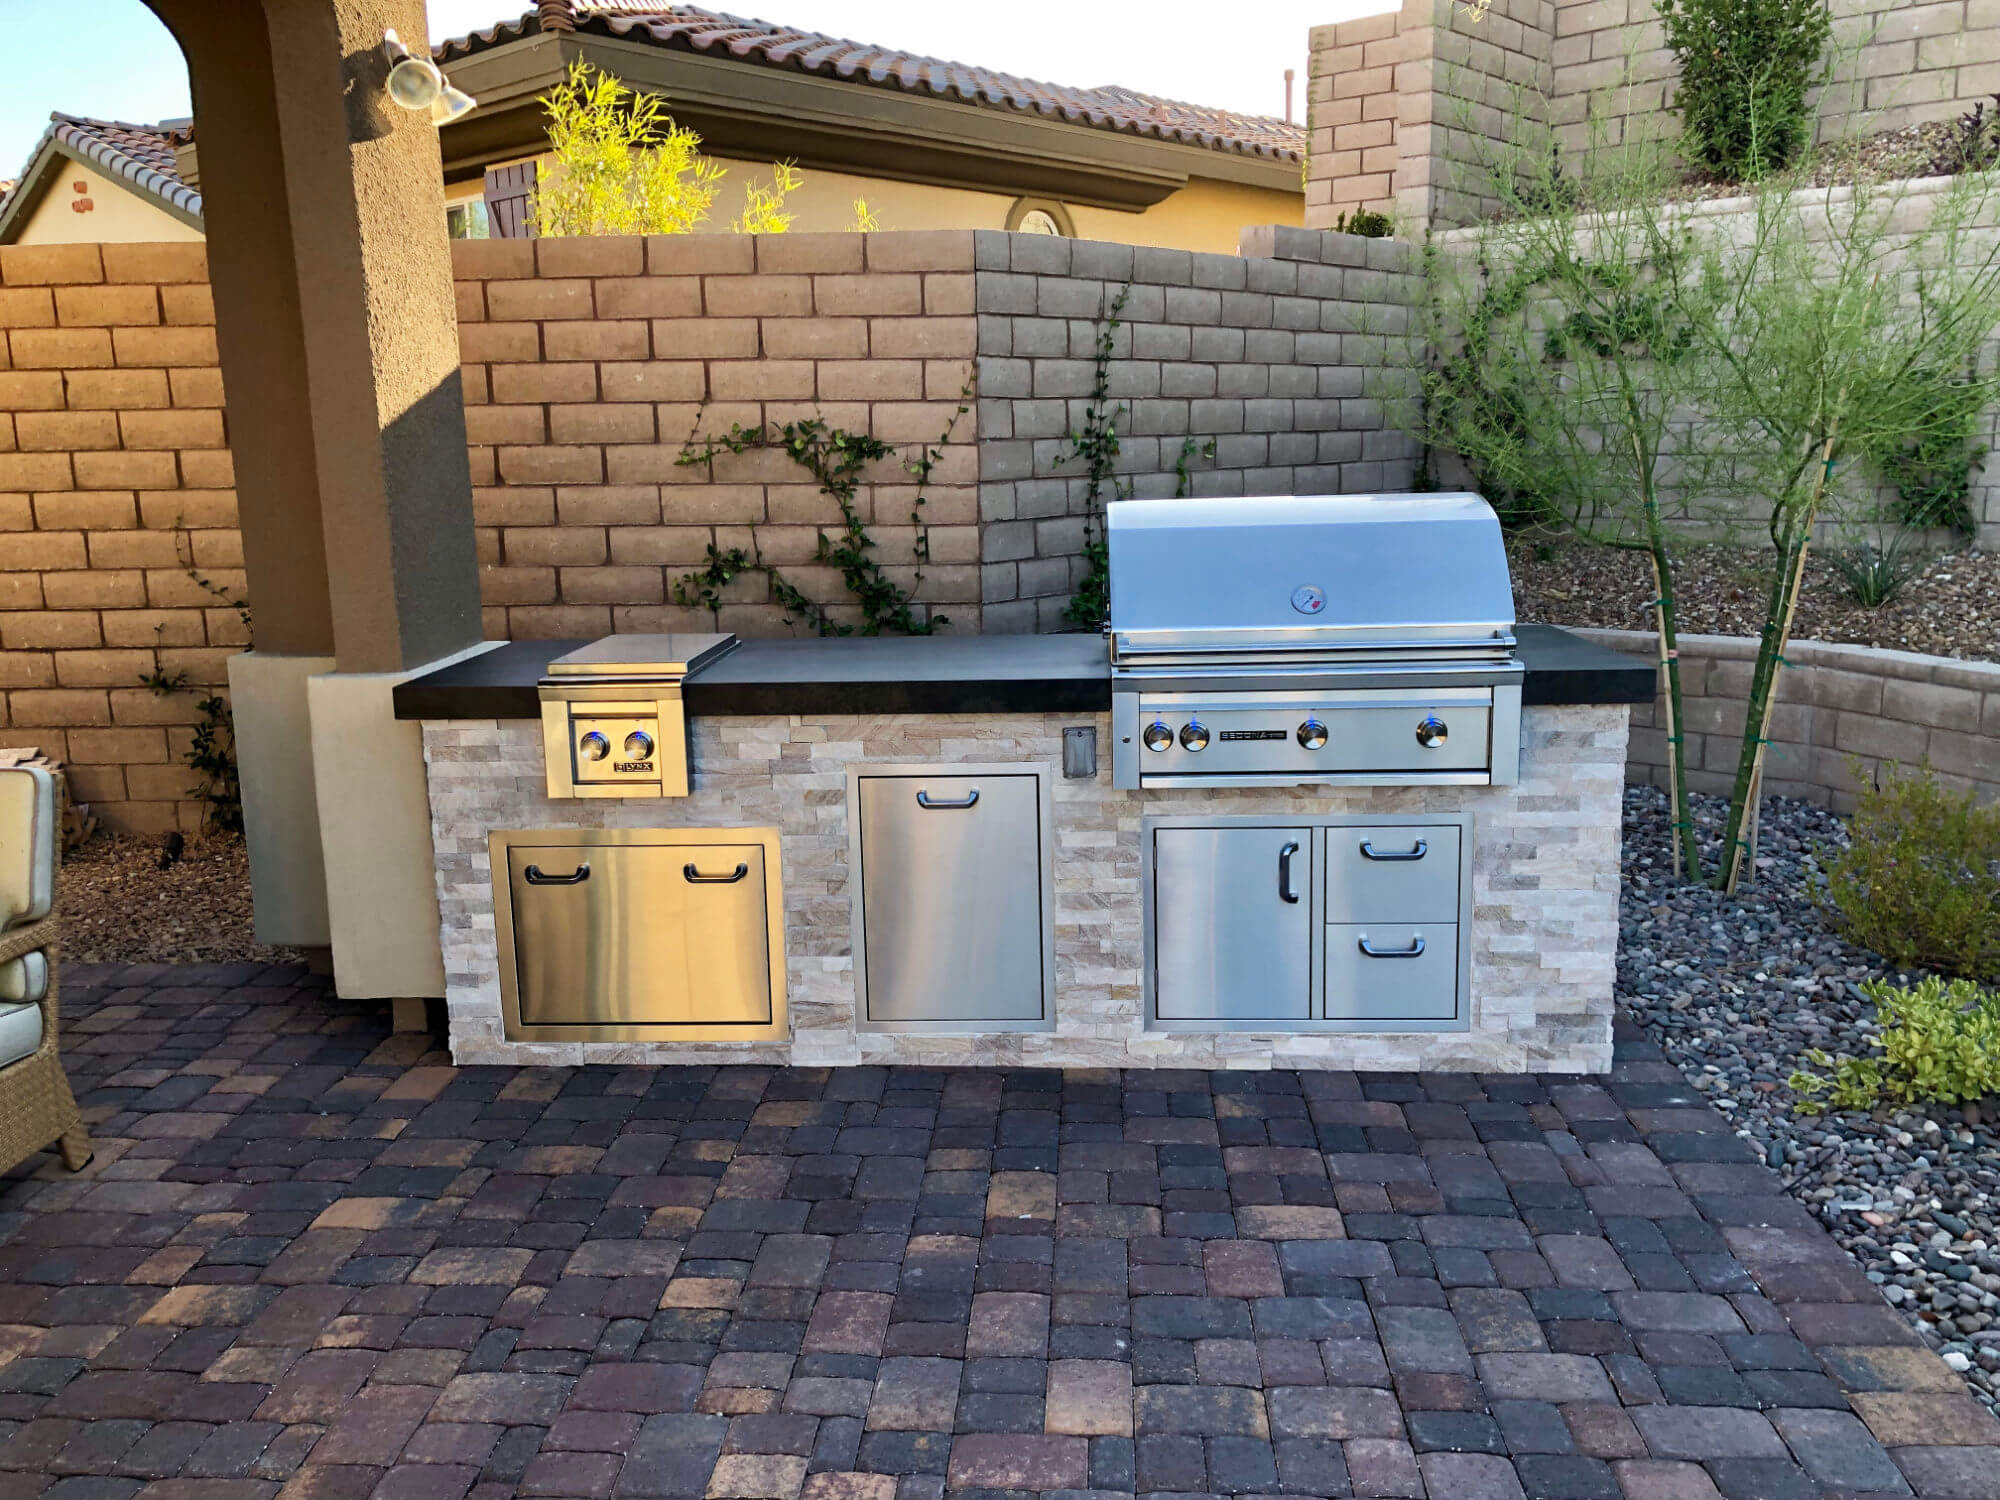 Custom Outdoor Kitchen by BBQ Concepts of Las Vegas, Nevada - Your source for professional outdoor kitchens, barbecue grills, components, and accessories